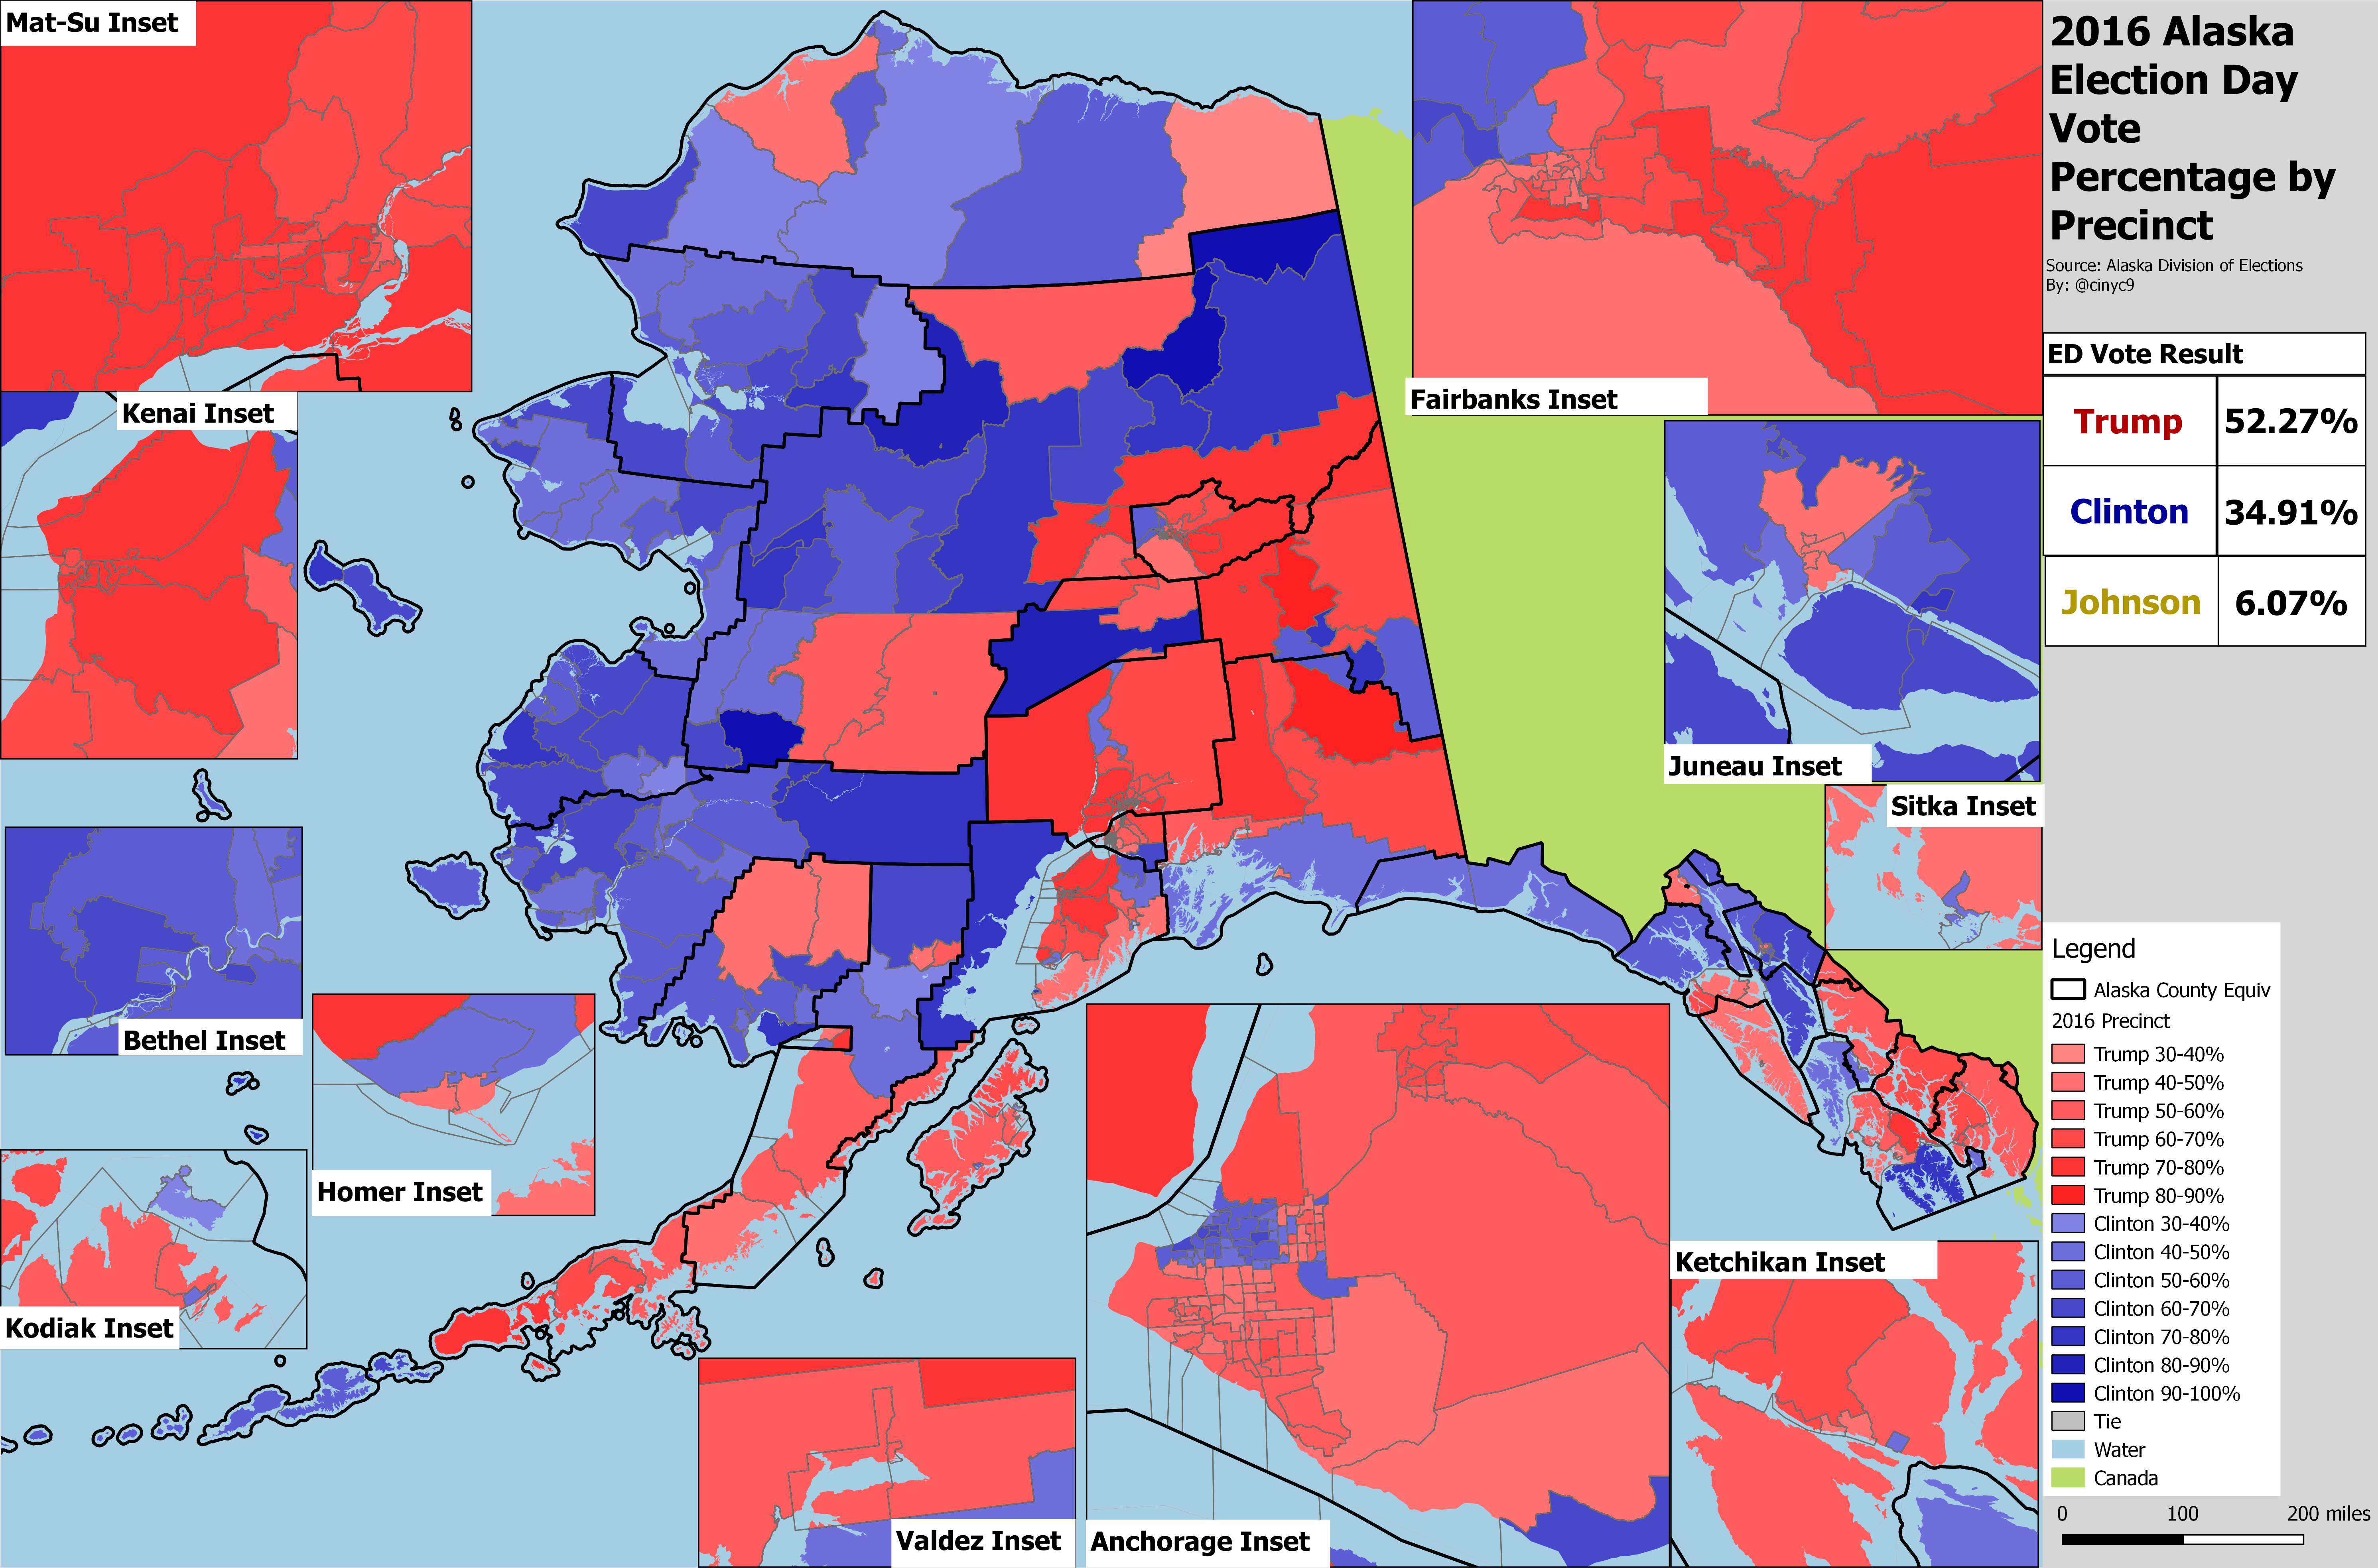 Alaska Presidential Results by Precinct